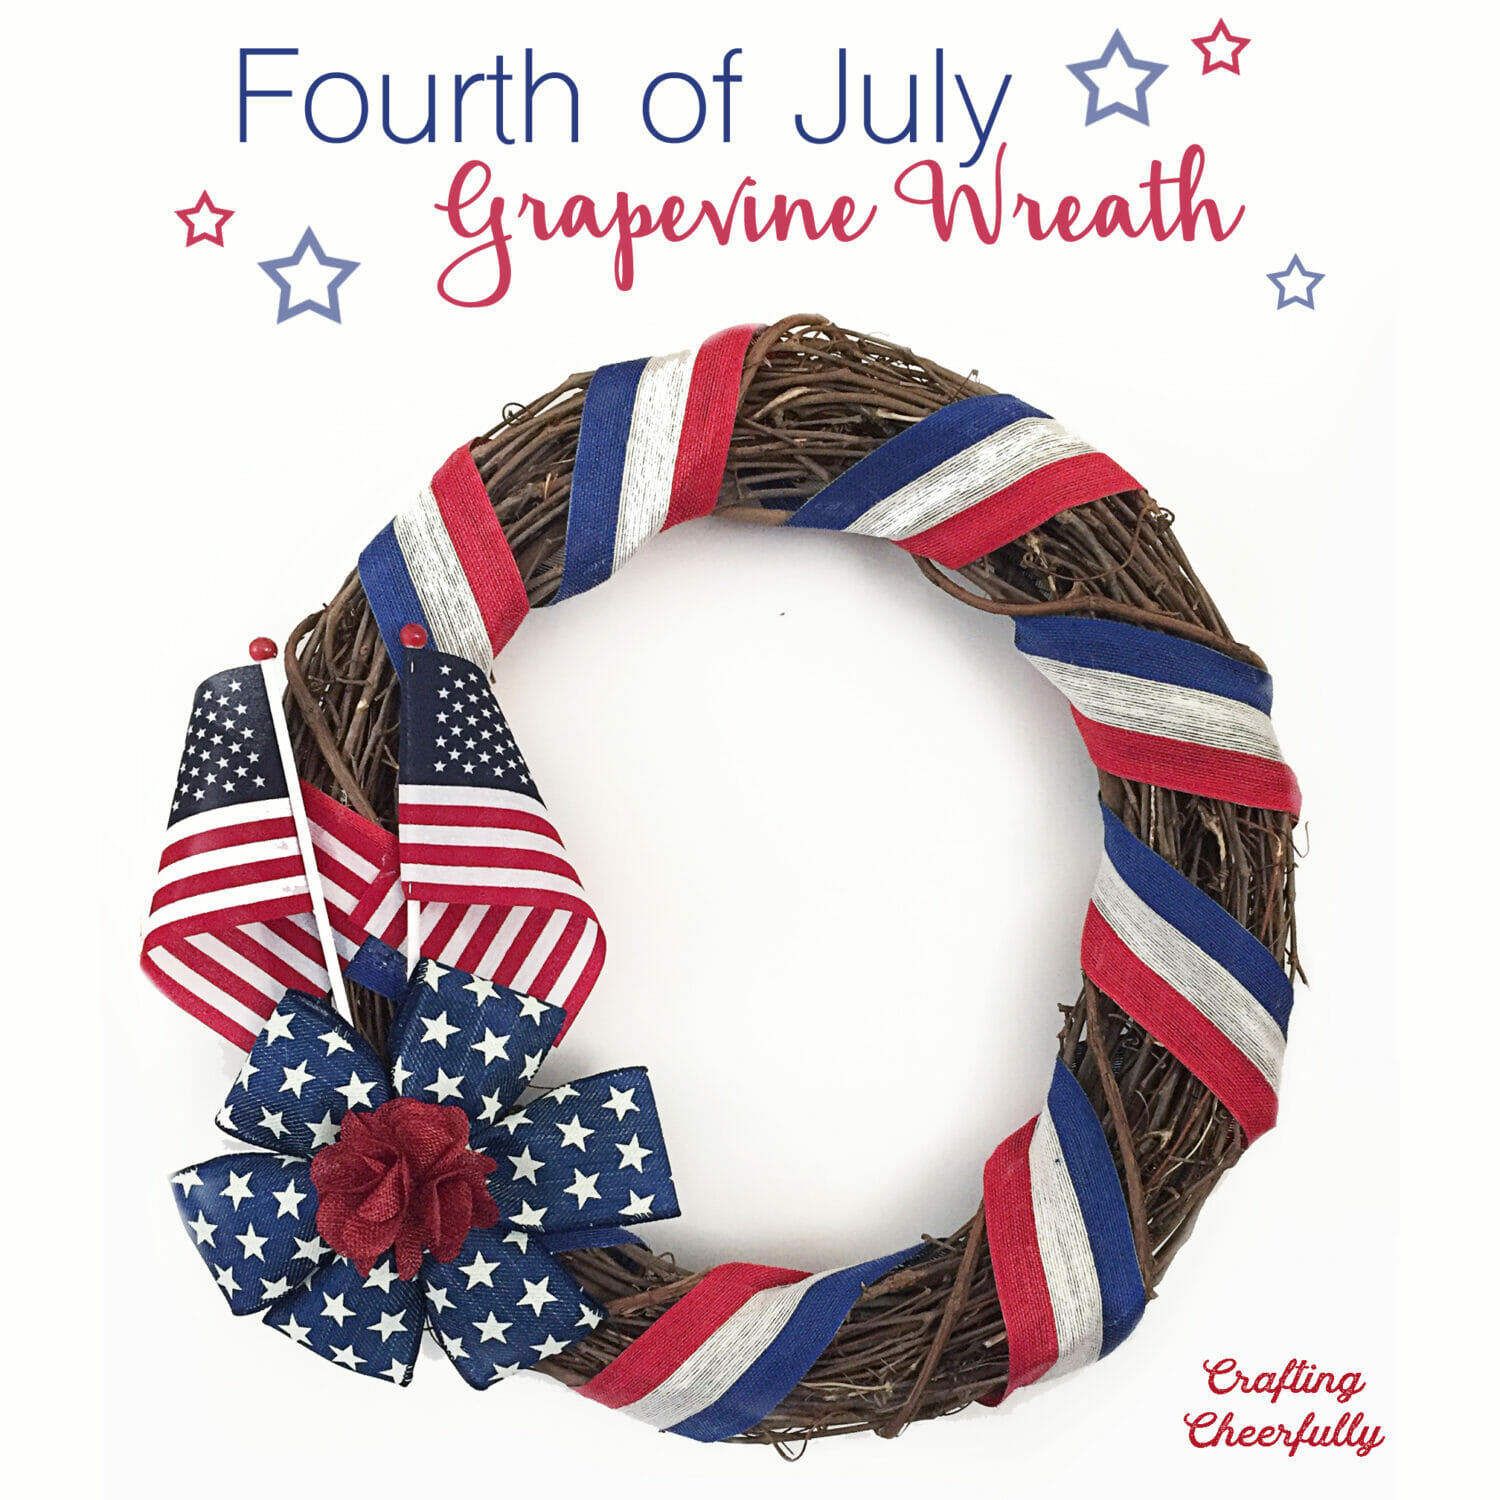 Fourth of July grapevine wreath.